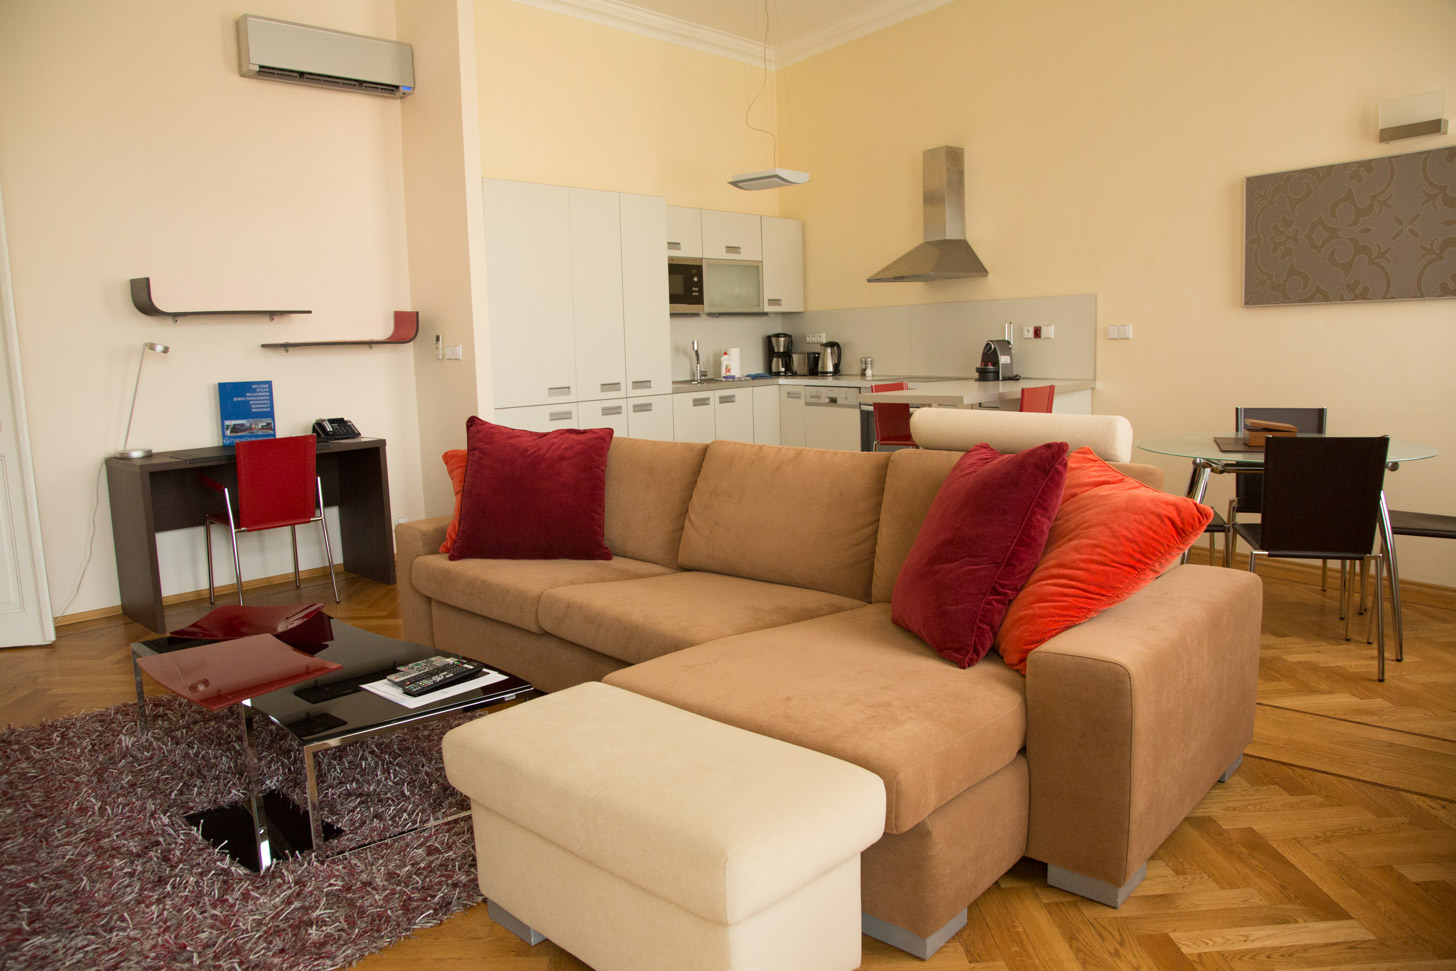 Appartement in Praag